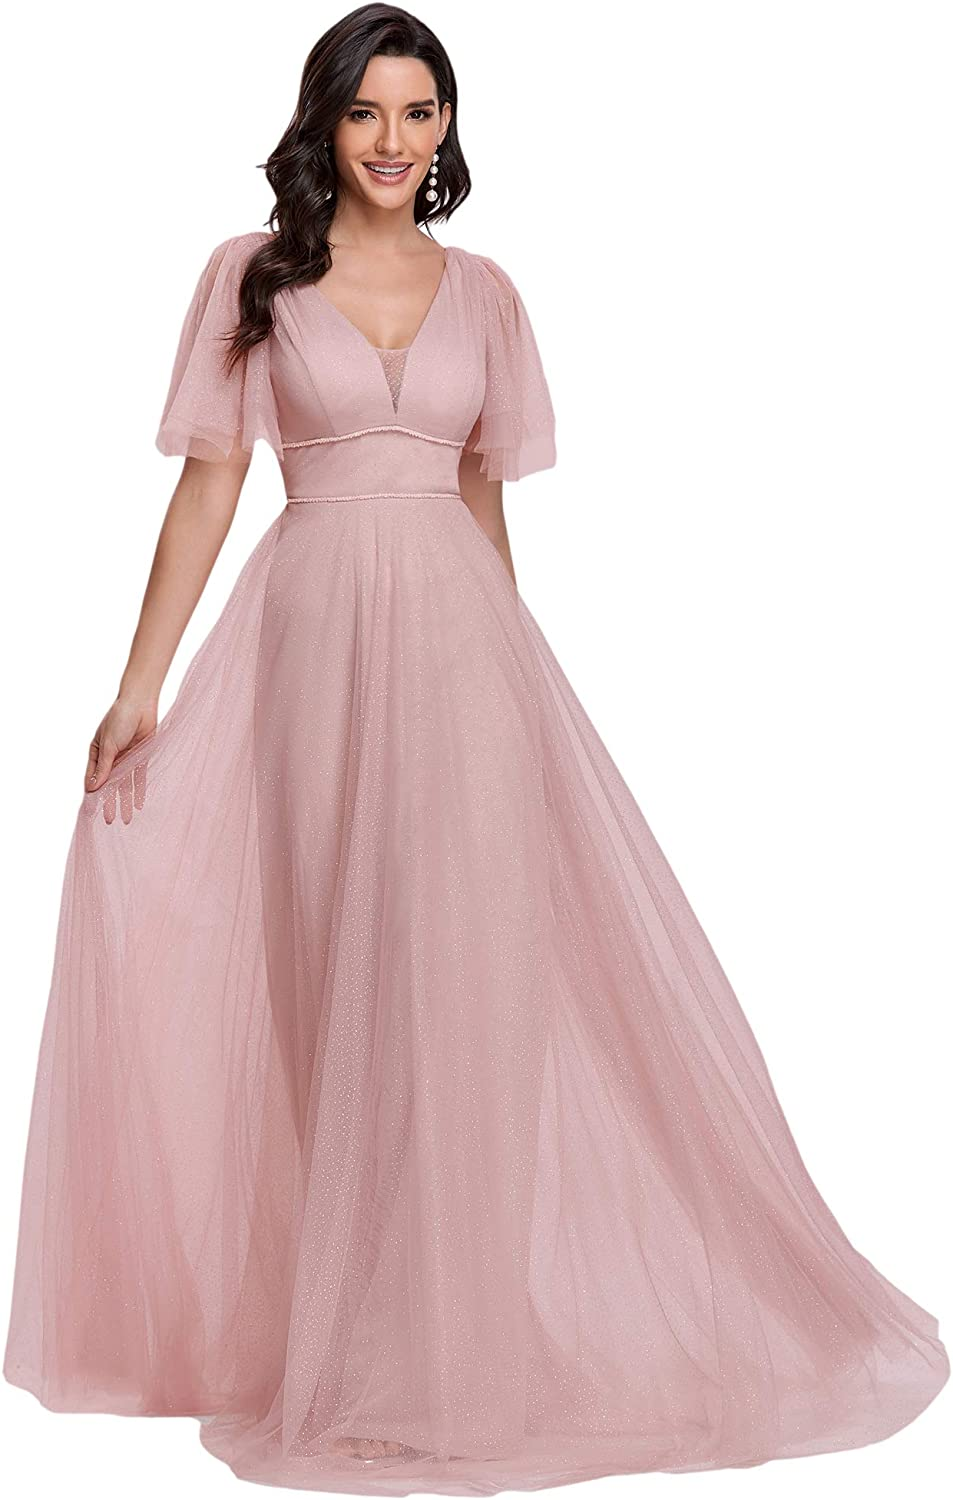 Ever-Pretty Women's Illusion Short Sleeve Summer Tulle Bridesmaid Dresses for Wedding 0278